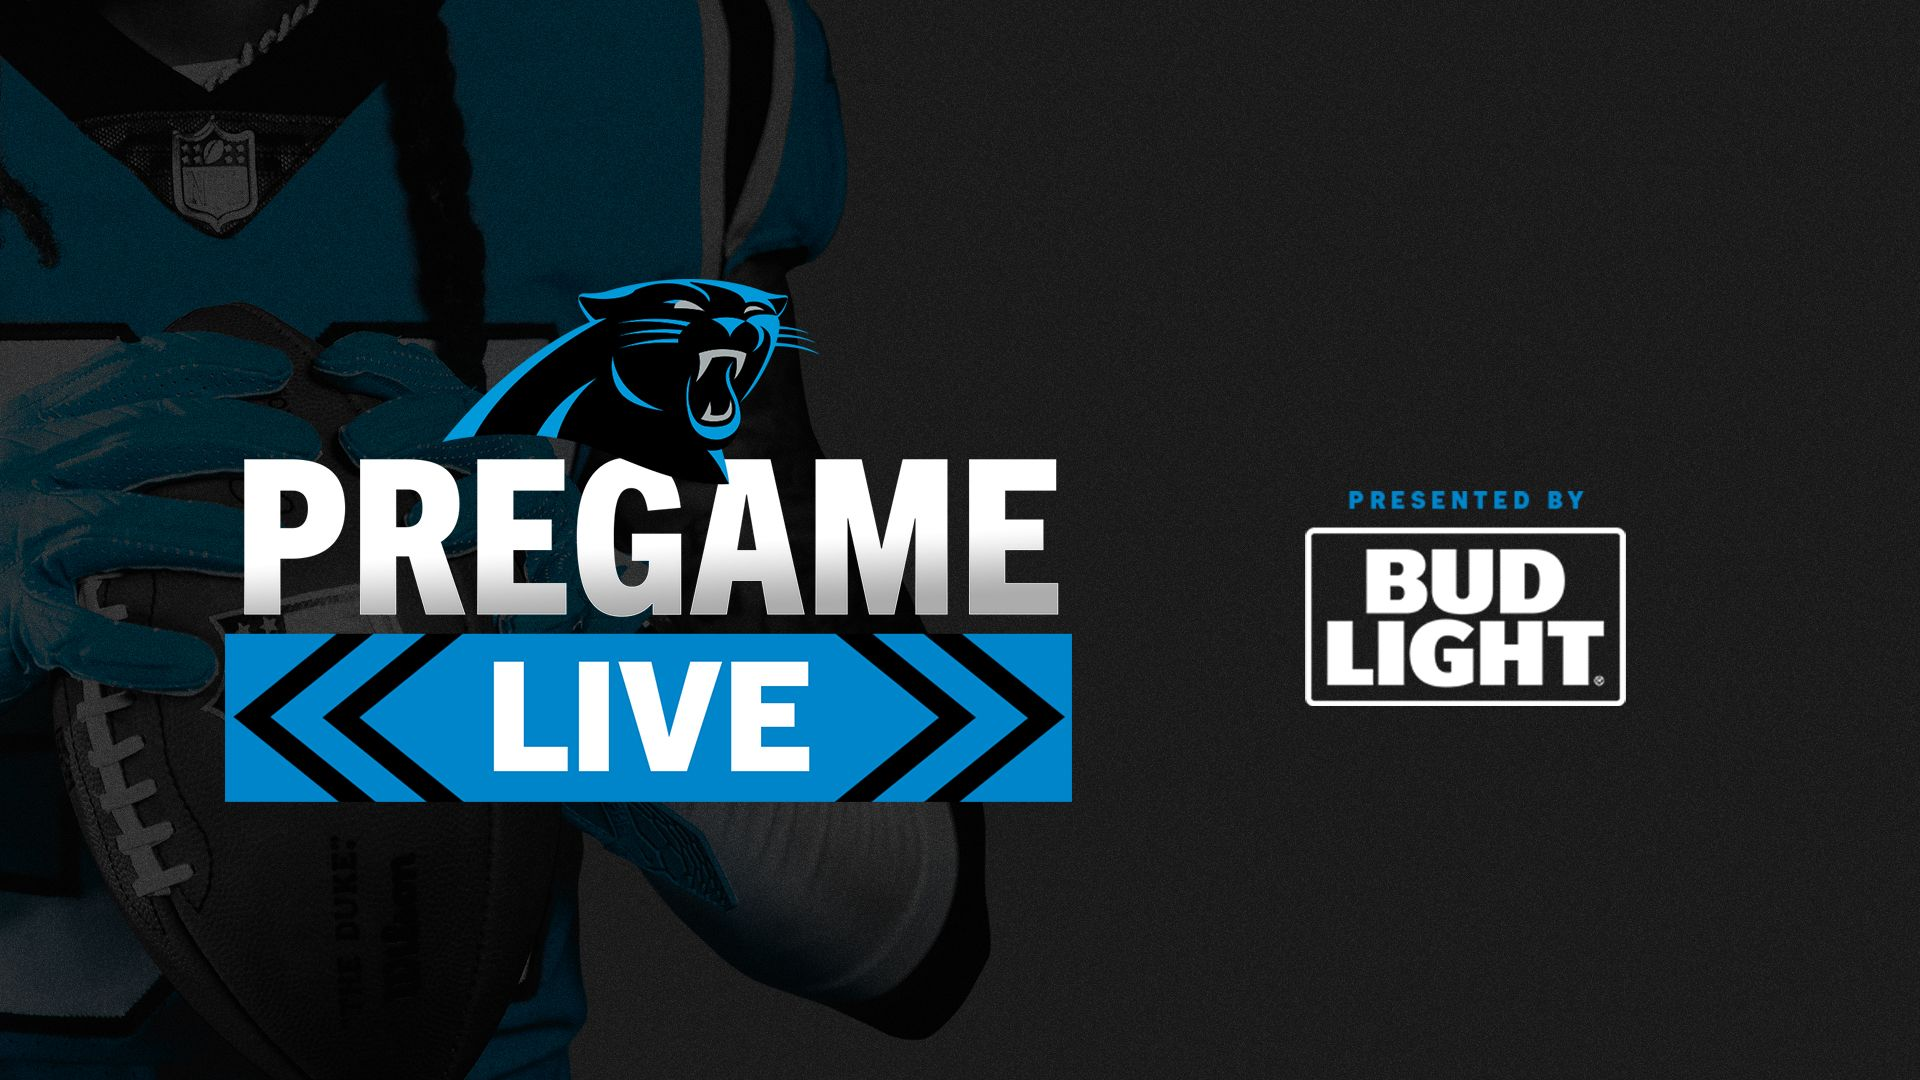 Panthers Pregame Live, presented by Bud Light